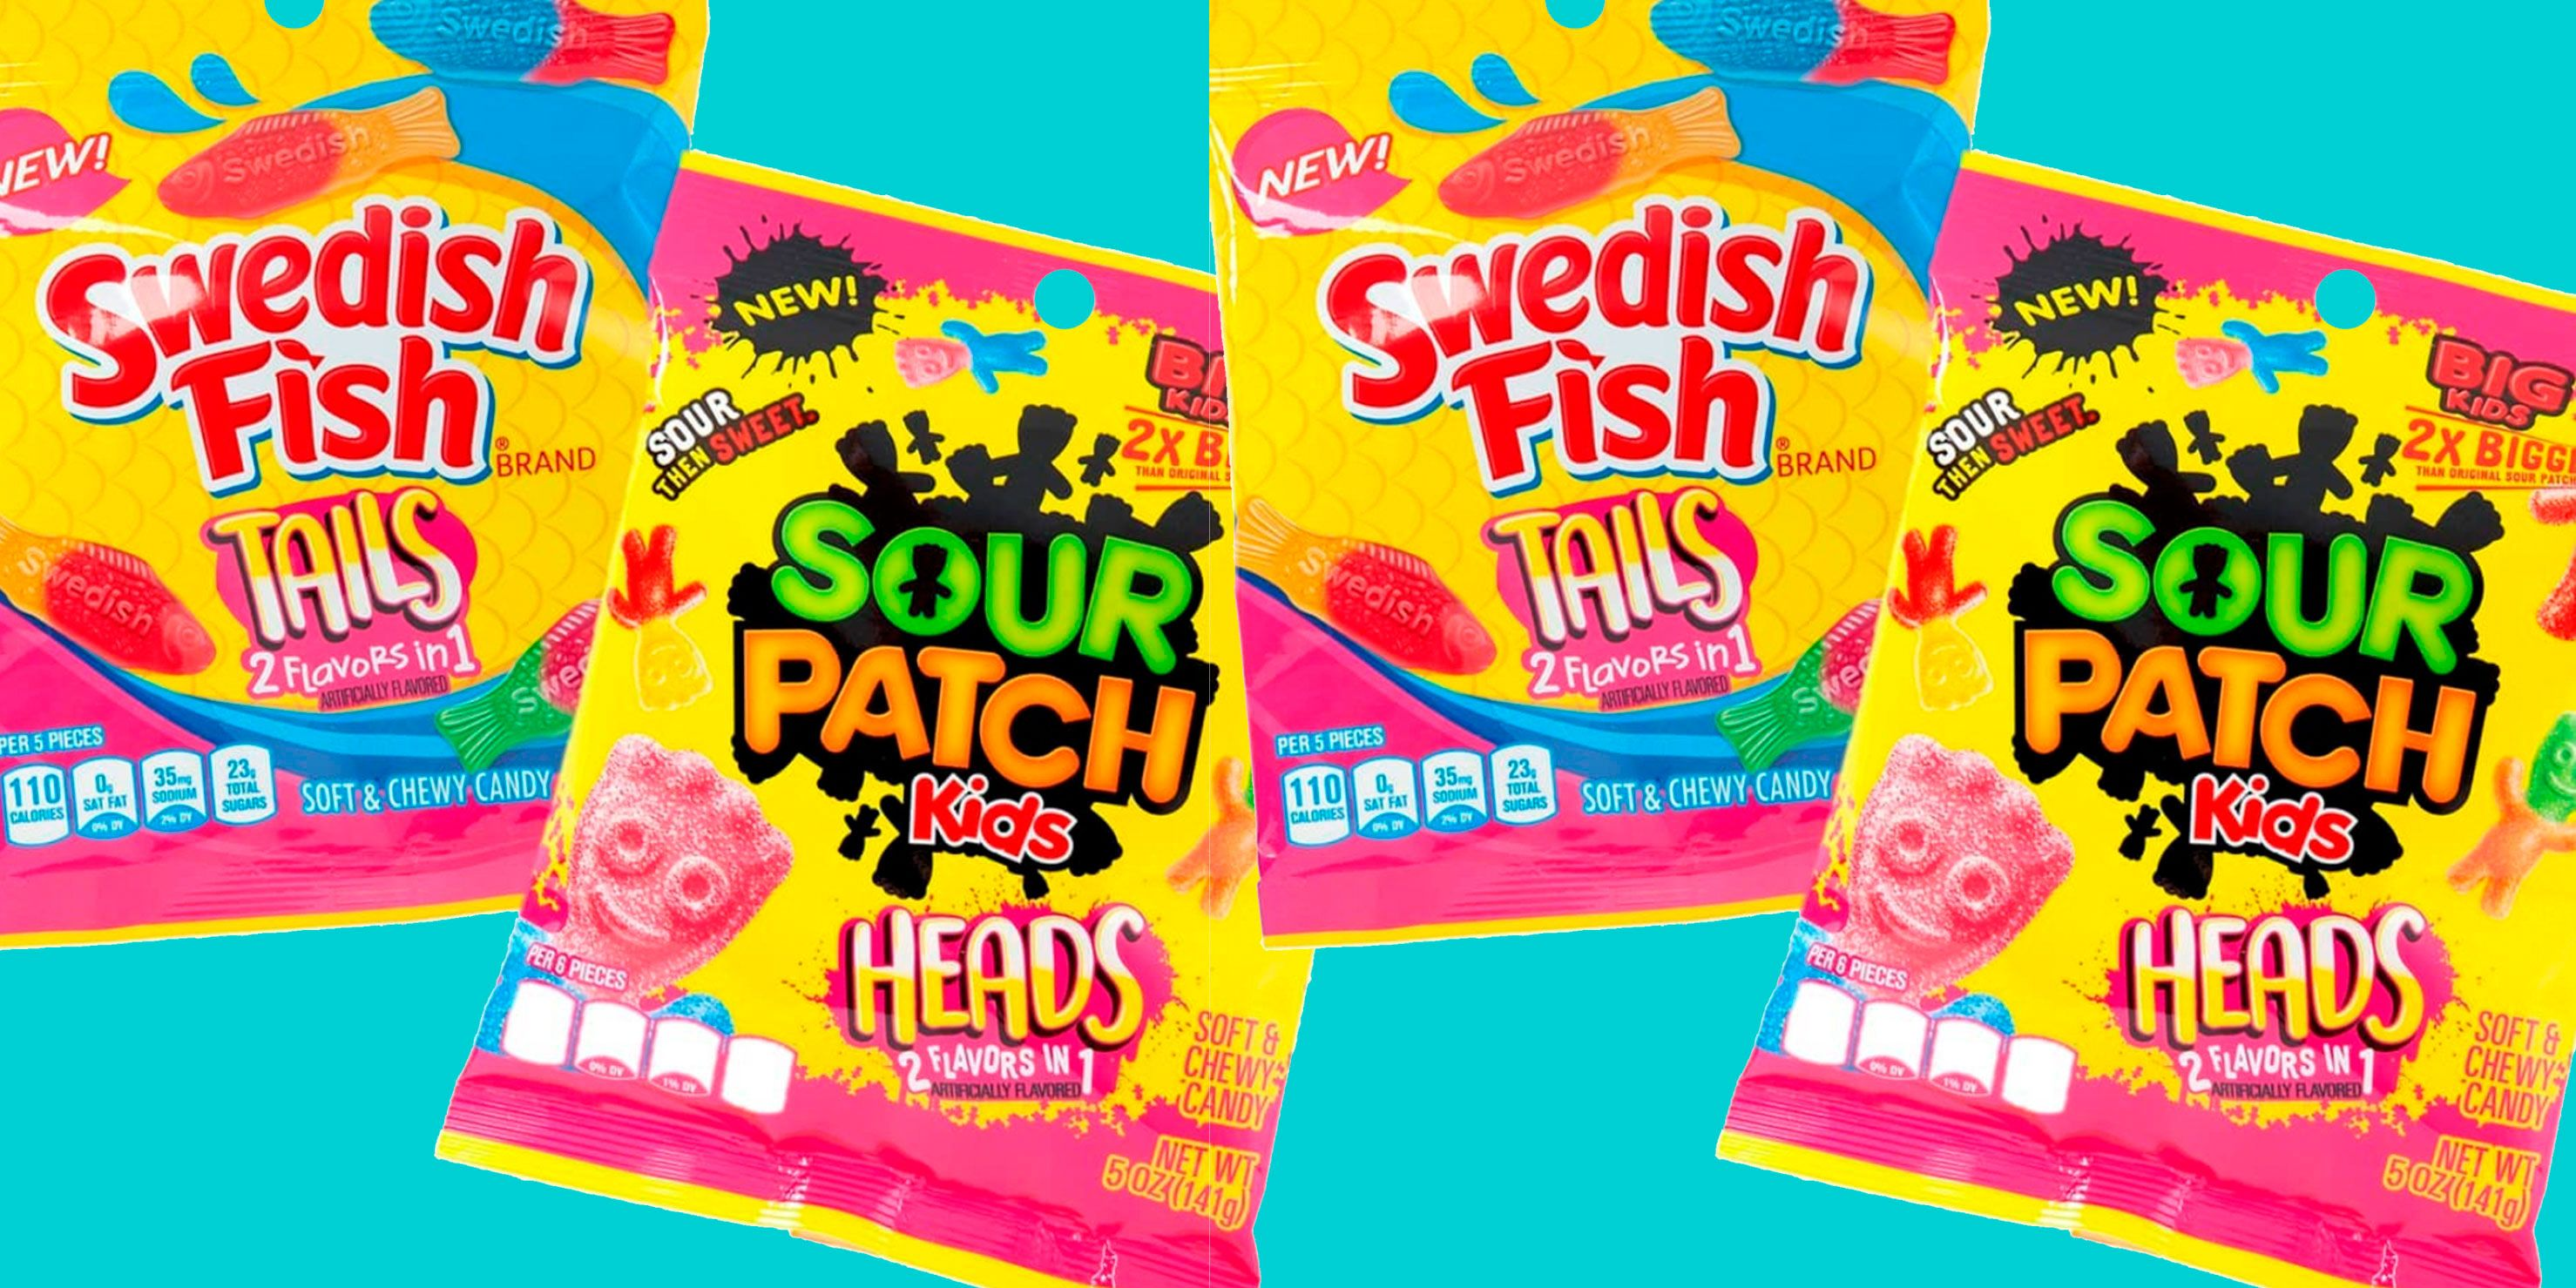 Swedish Fish And Sour Patch Kids Introduce 2-in-1 Flavors